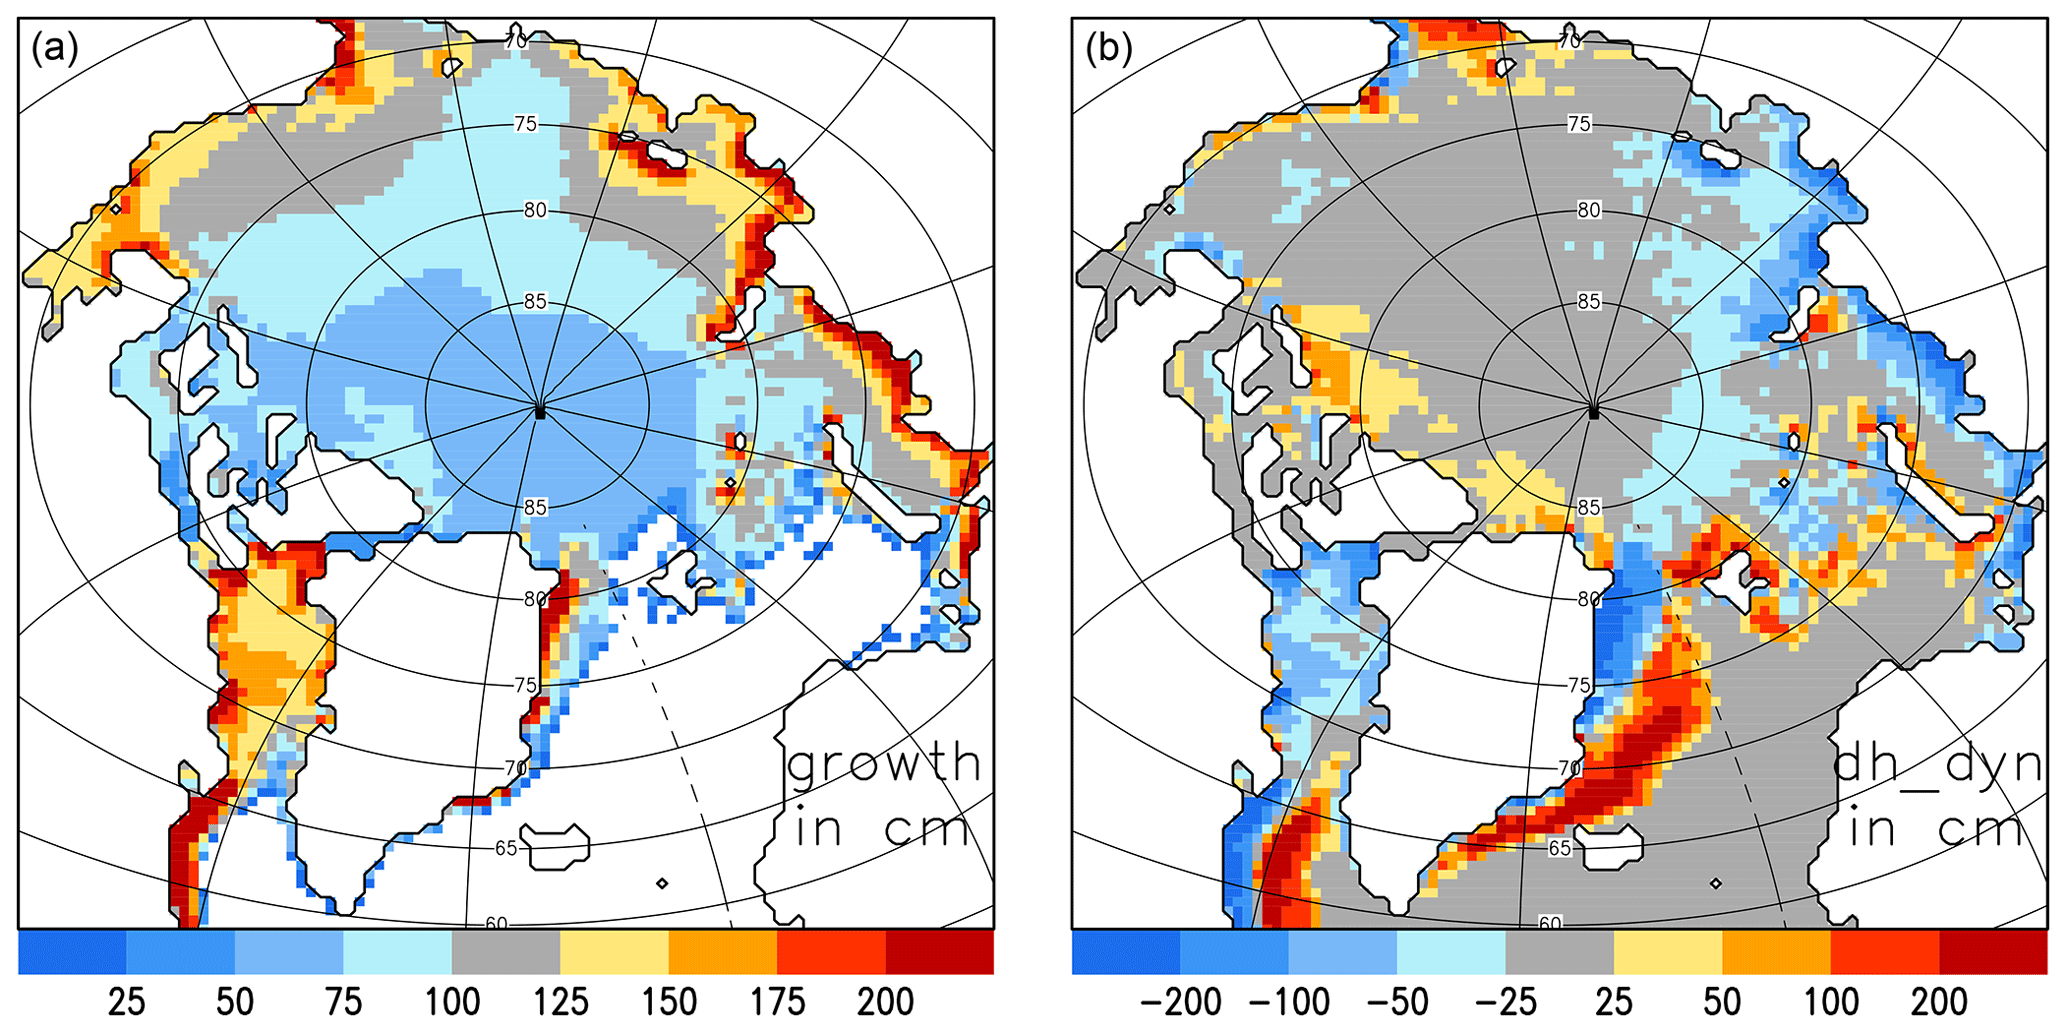 TC - New insight from CryoSat-2 sea ice thickness for sea